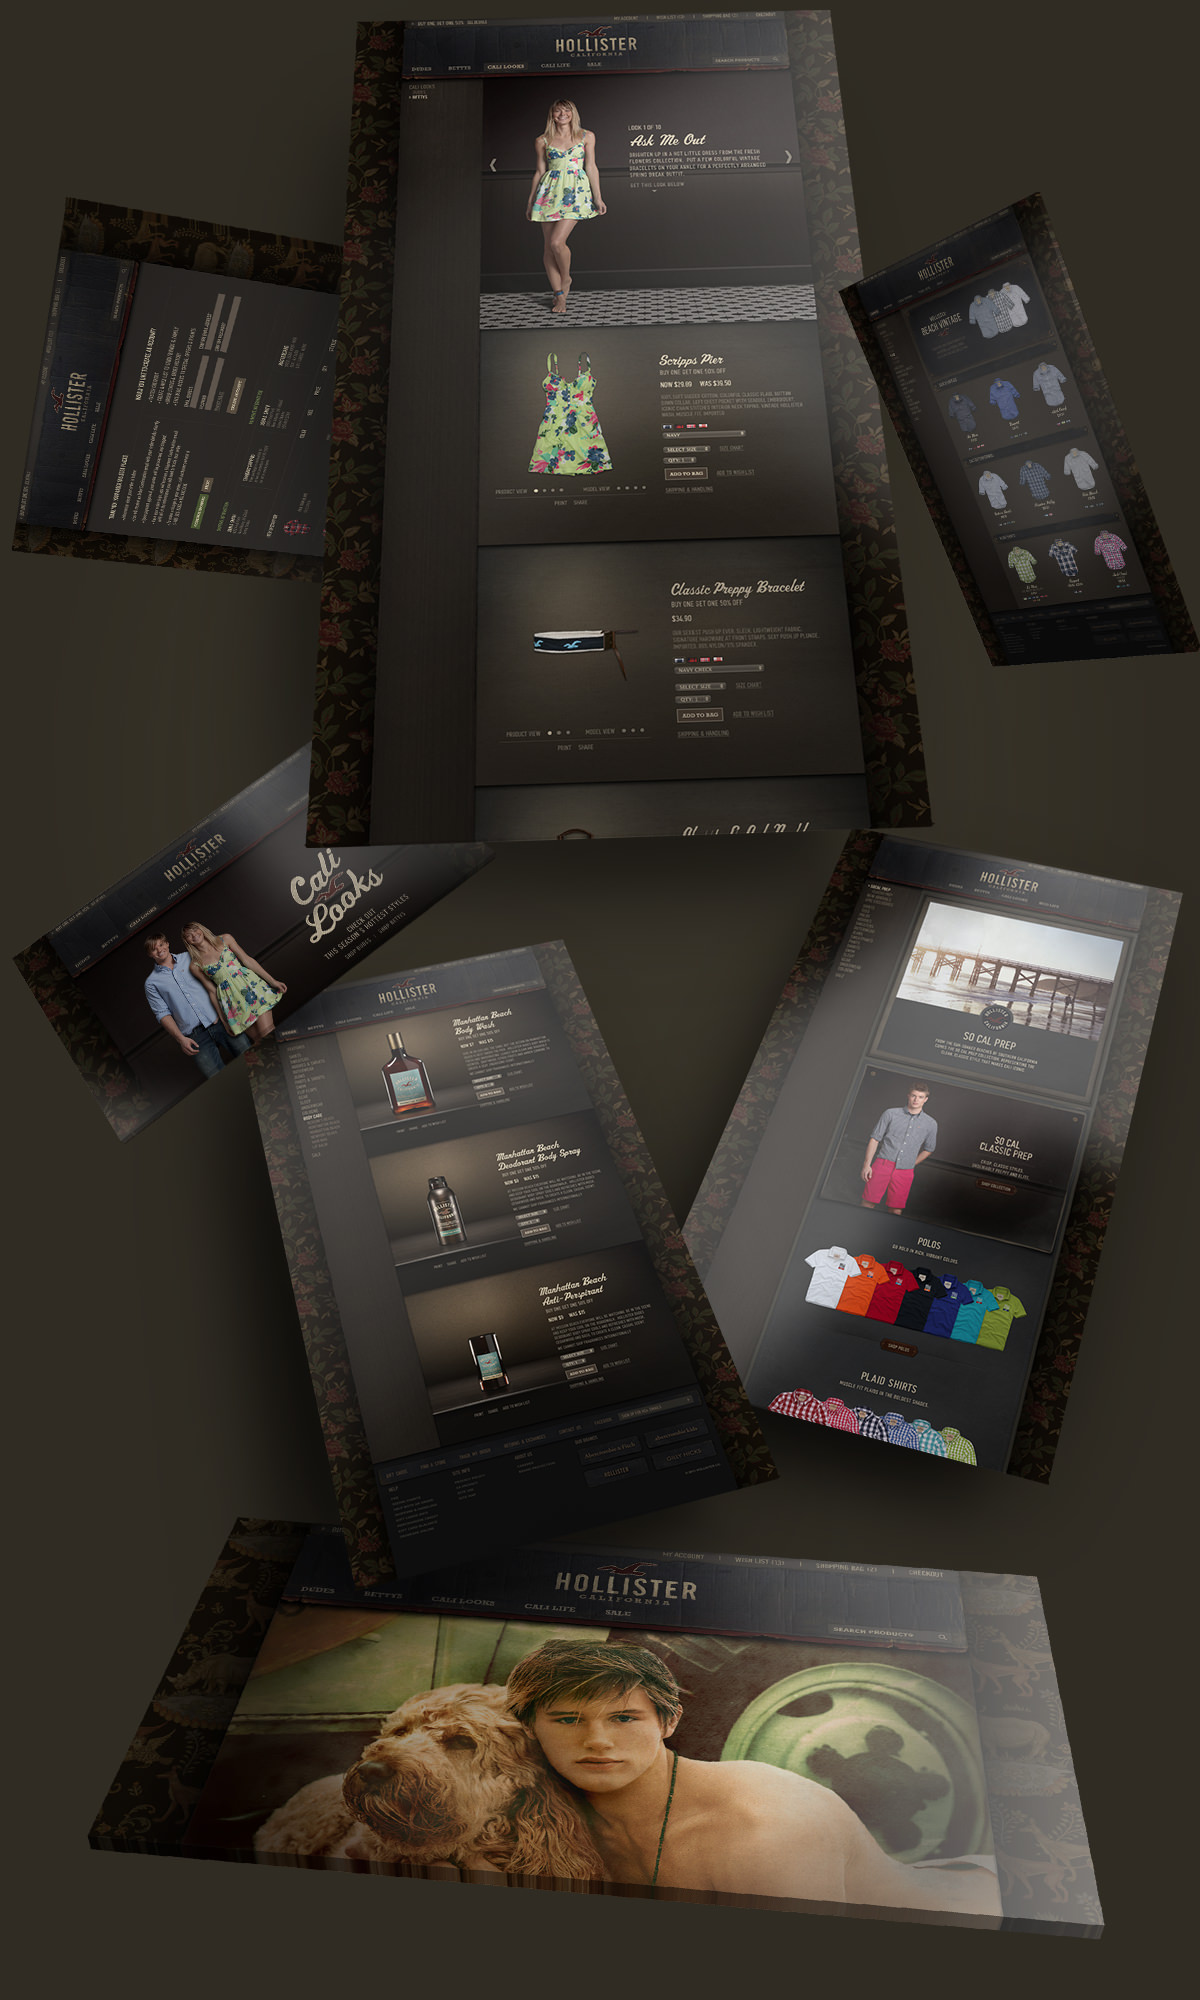 Hollister Co. Redesign by Jeff Rigsby